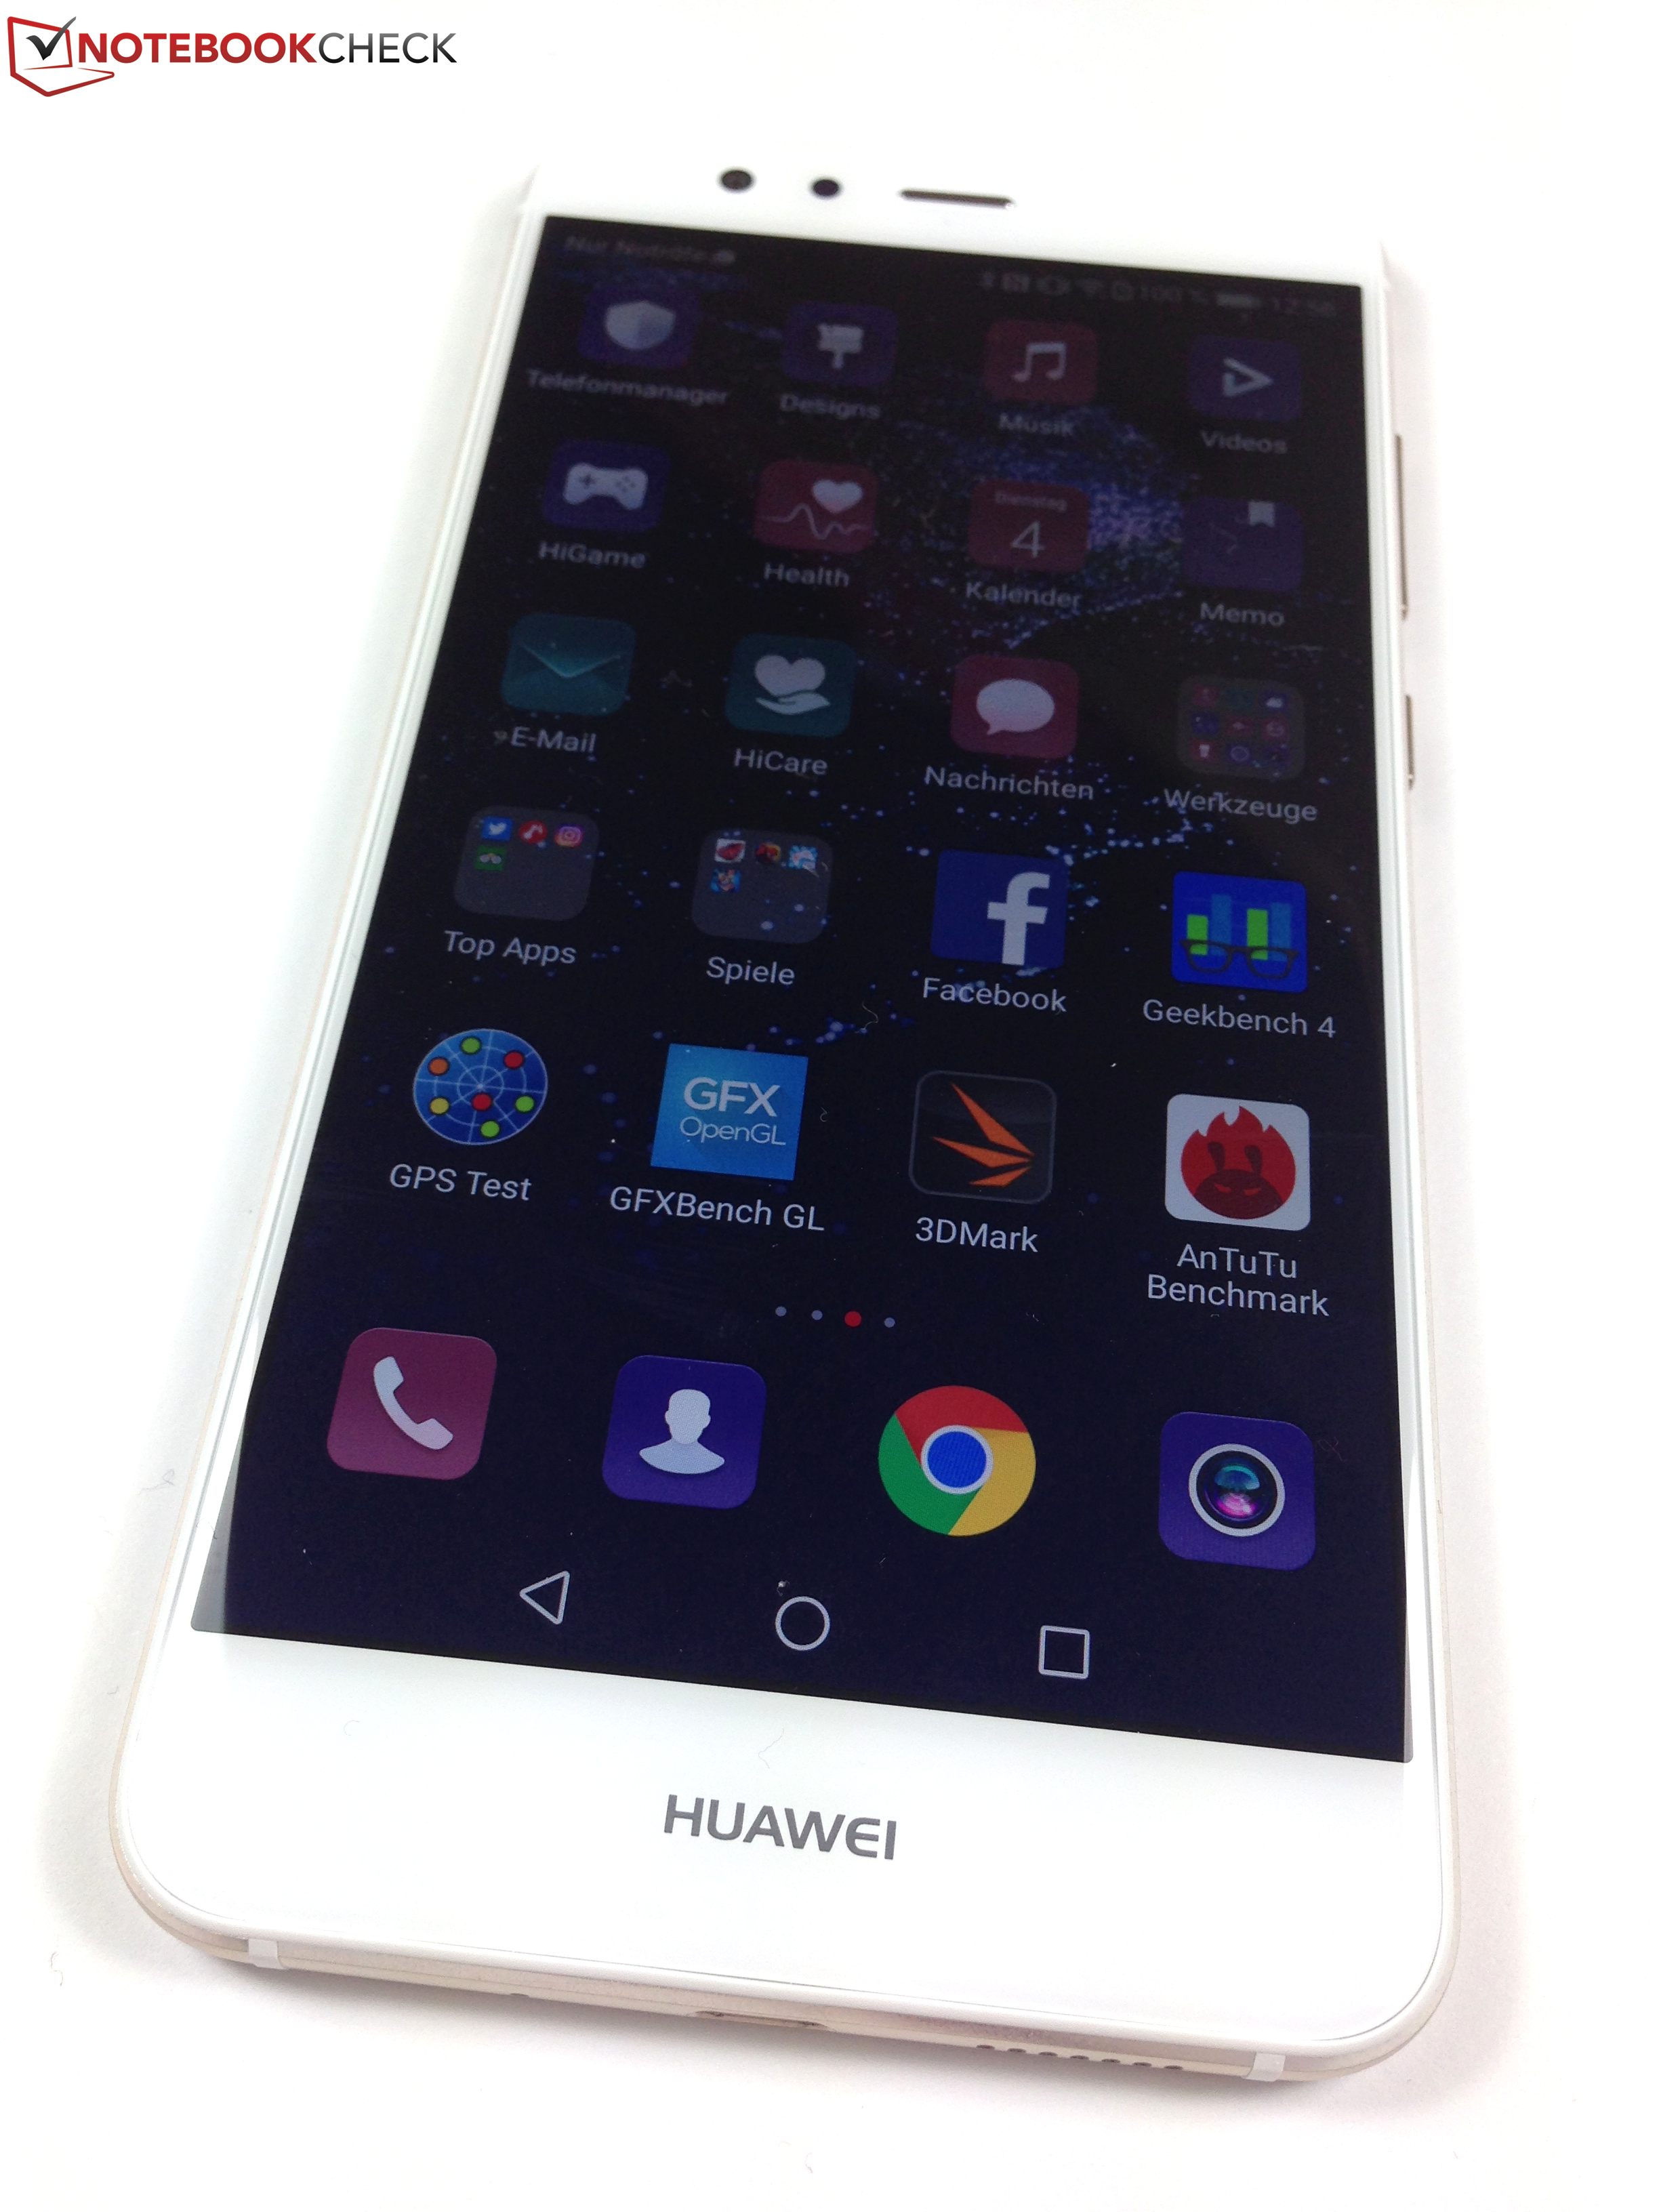 Huawei P10 Lite Smartphone Review - NotebookCheck.net Reviews